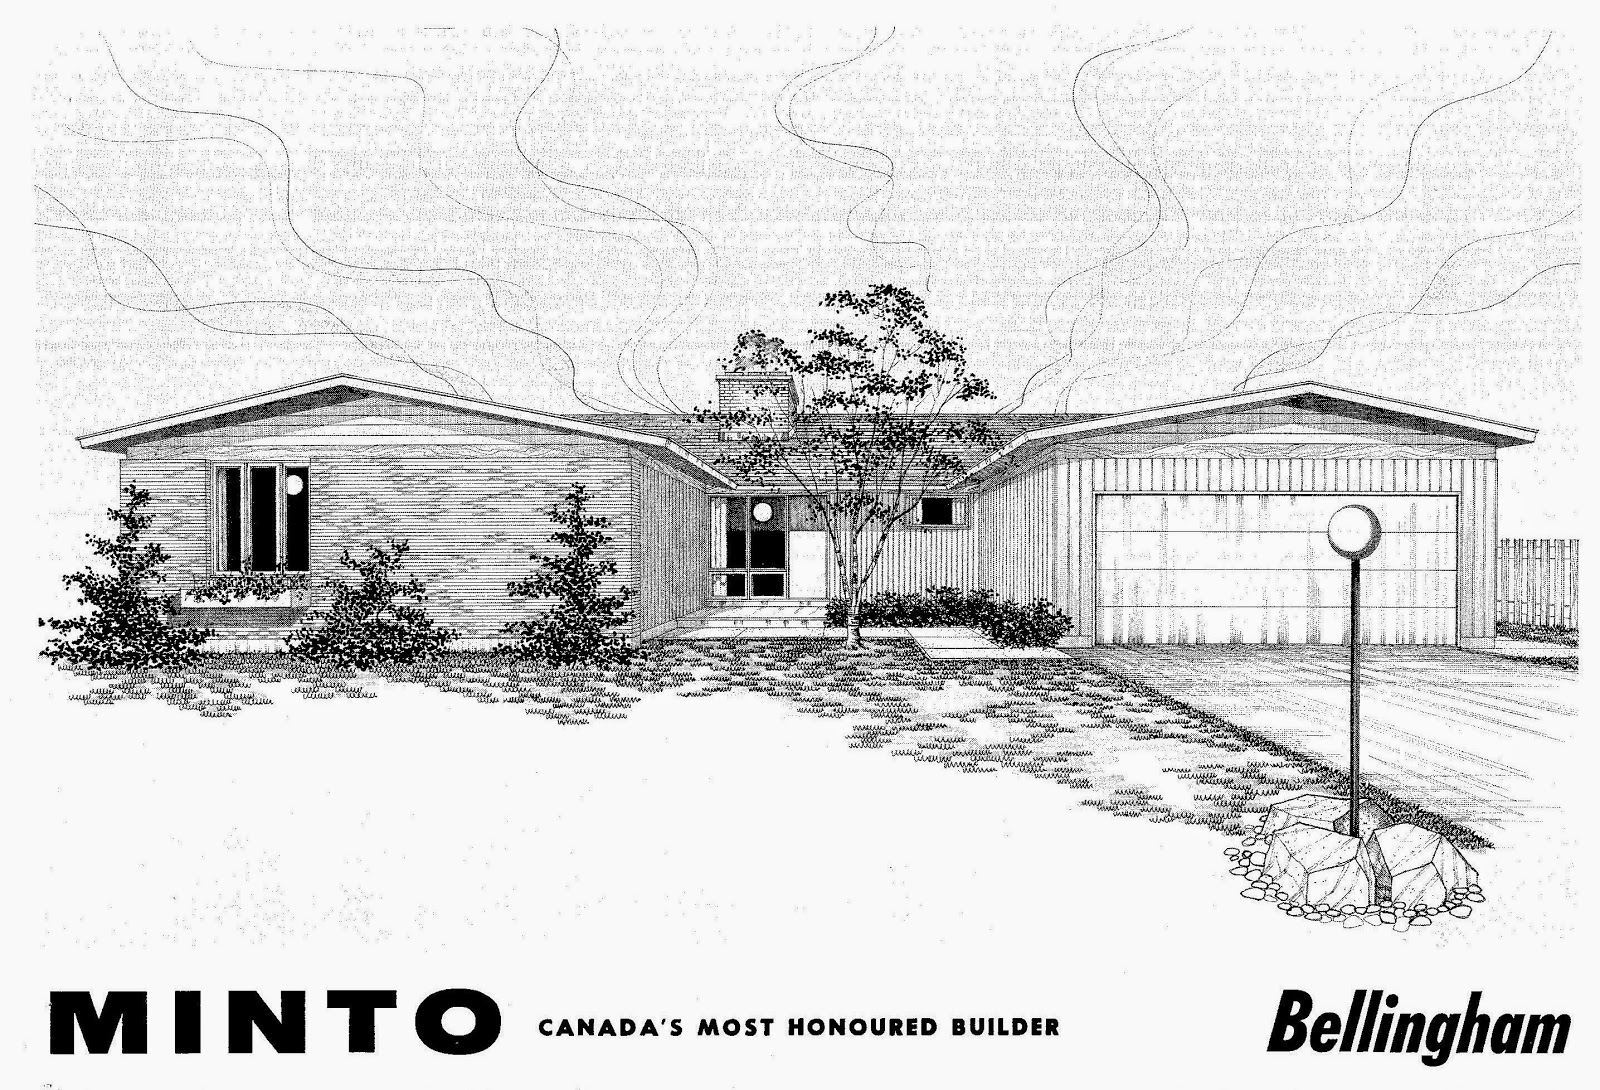 The Ranch Houses From This Series Of Plans Are Sprawling And Have Modern Asymmetrical Facades All Three These Won A Canadian Housing Design